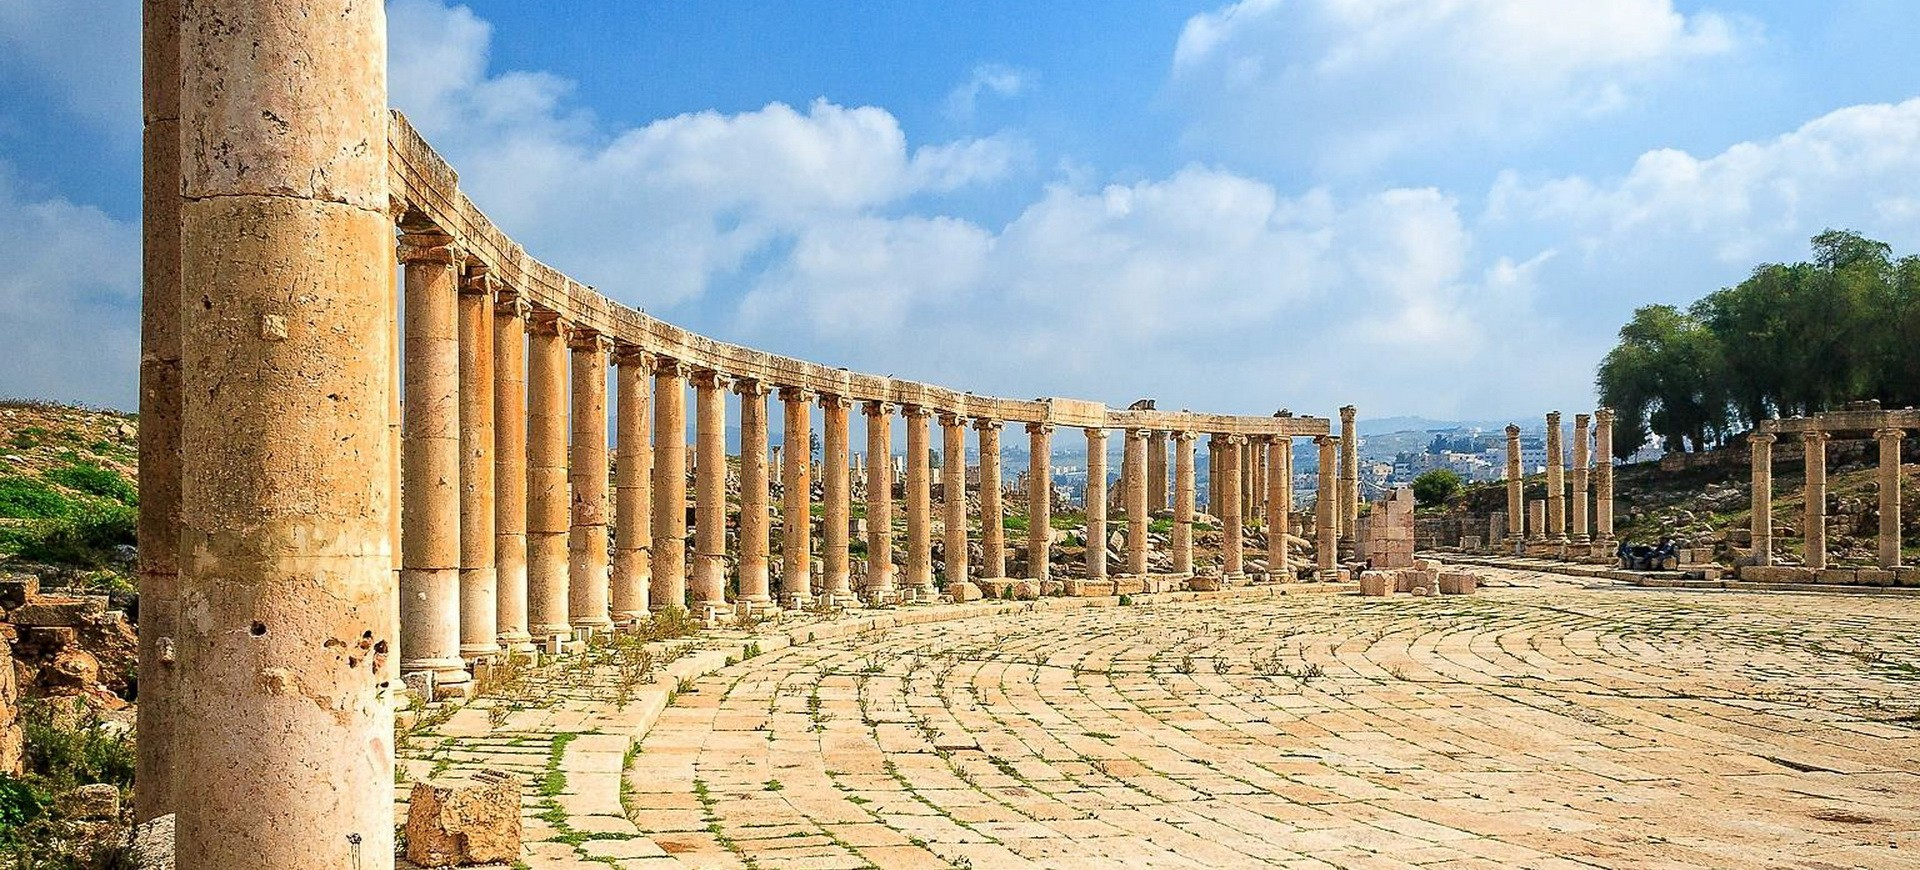 Jerash site antique